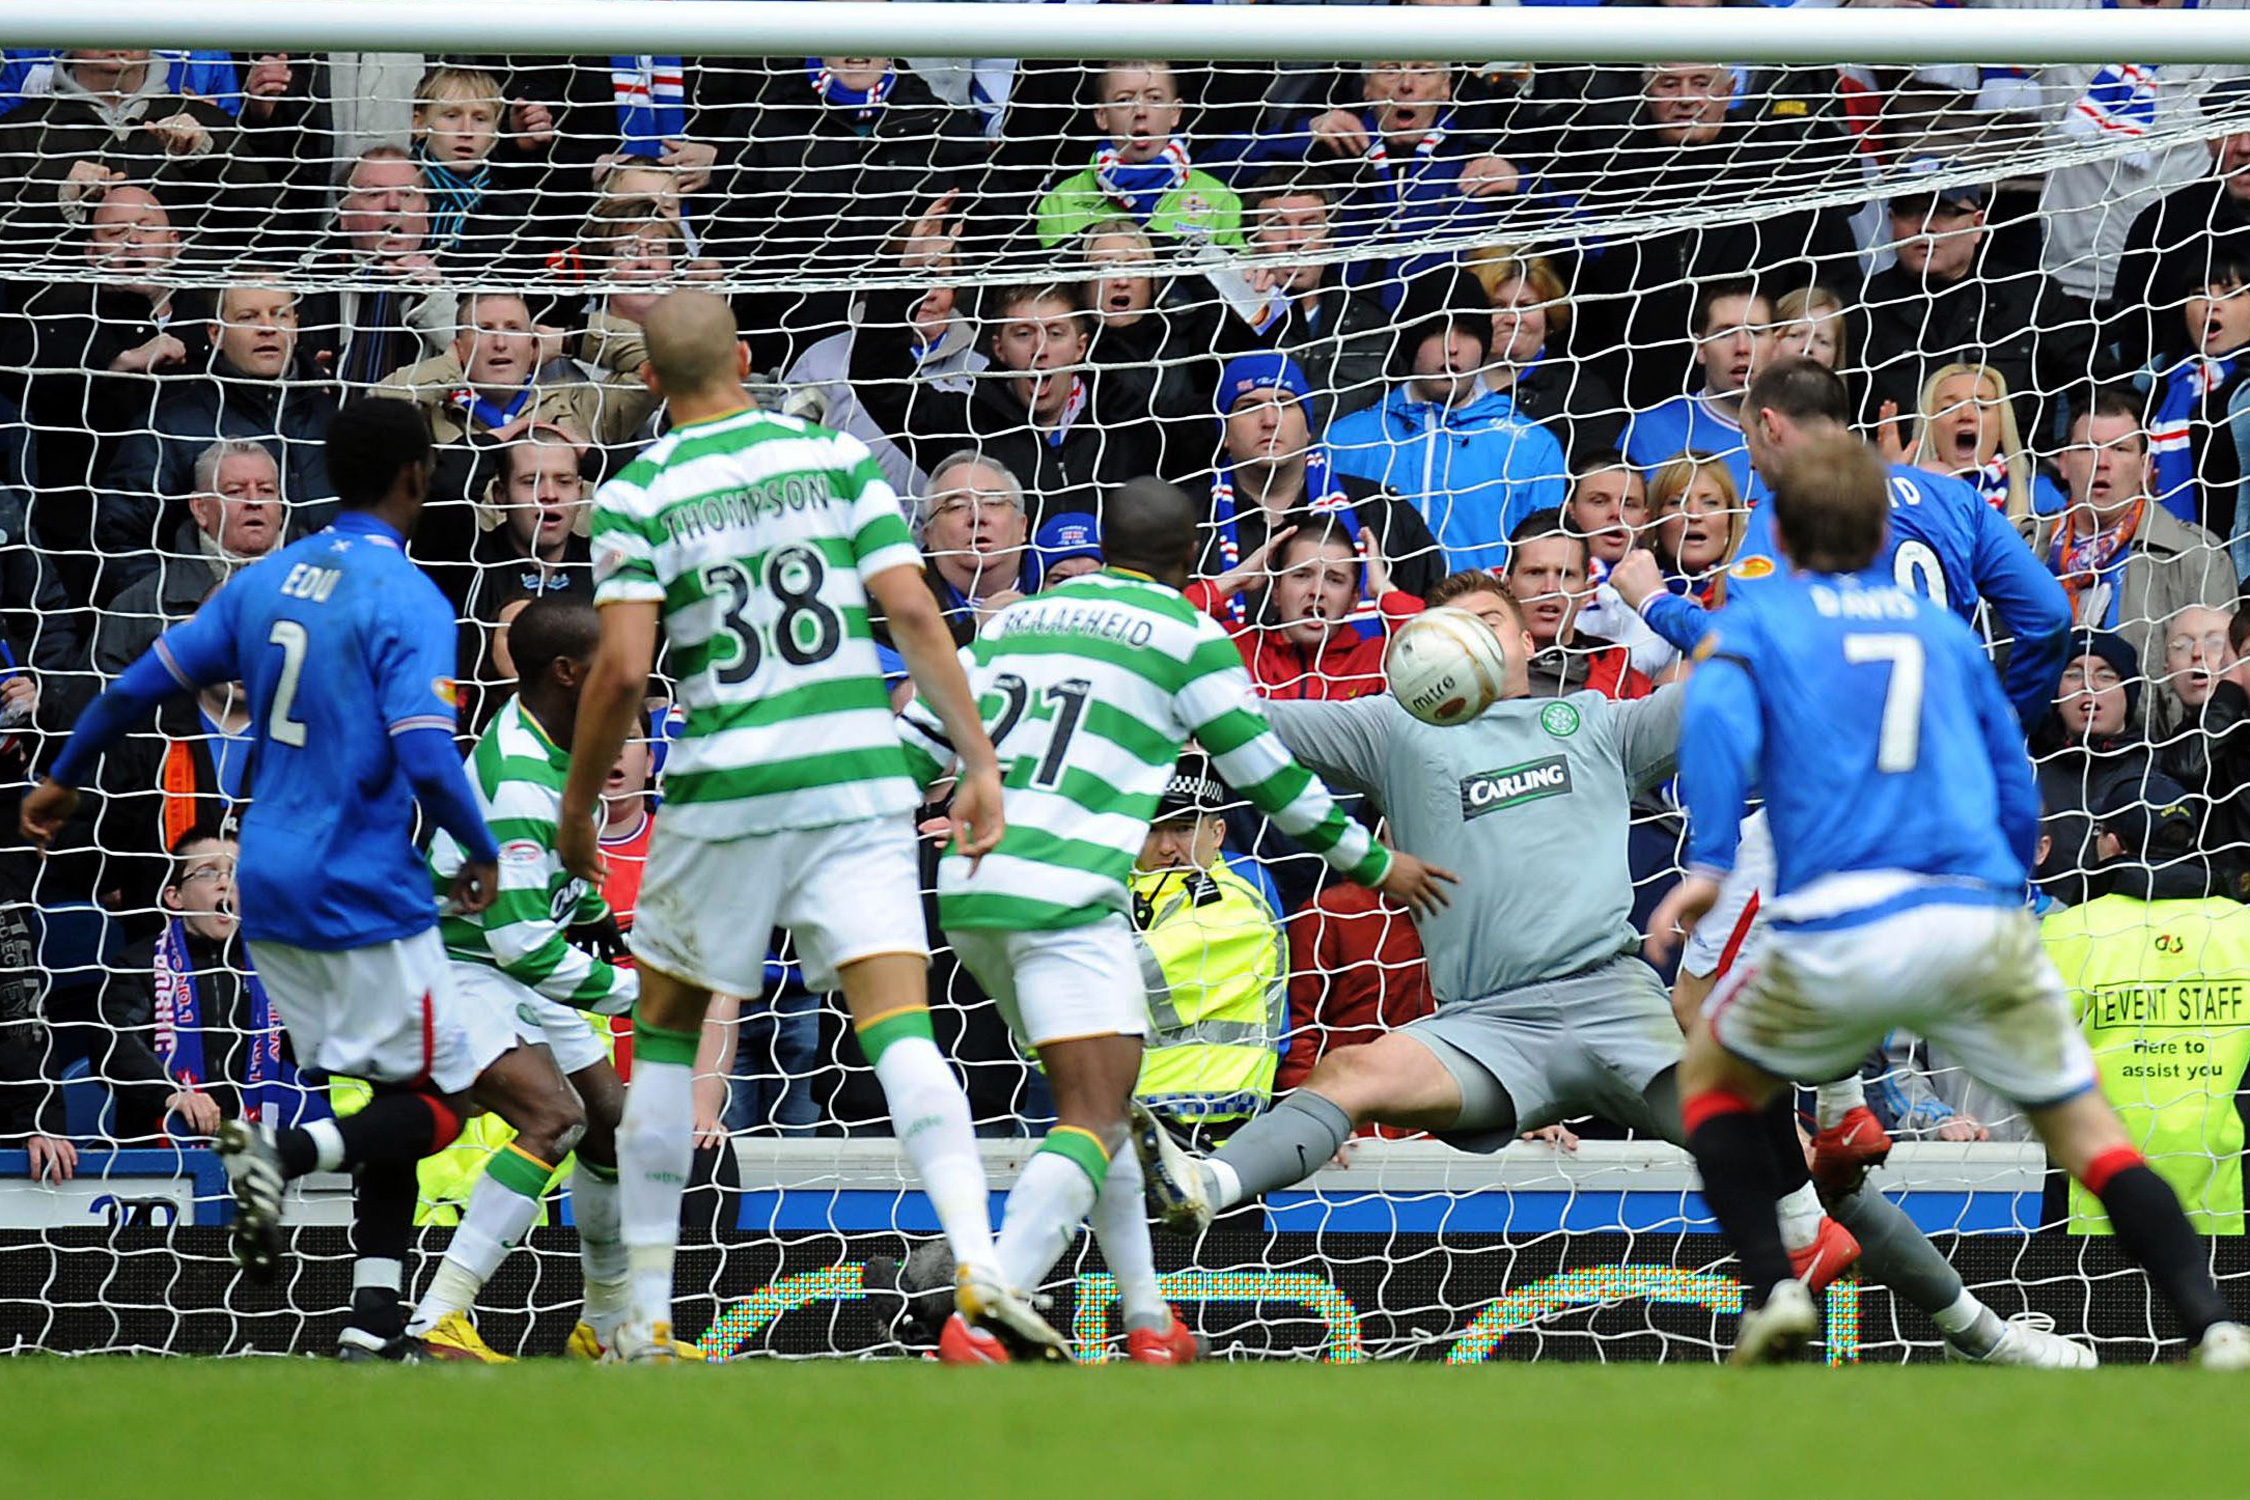 Maurice Edu scores the game-winning goal for Rangers vs. Celtic in a heated Old Firm derby in February 2010.